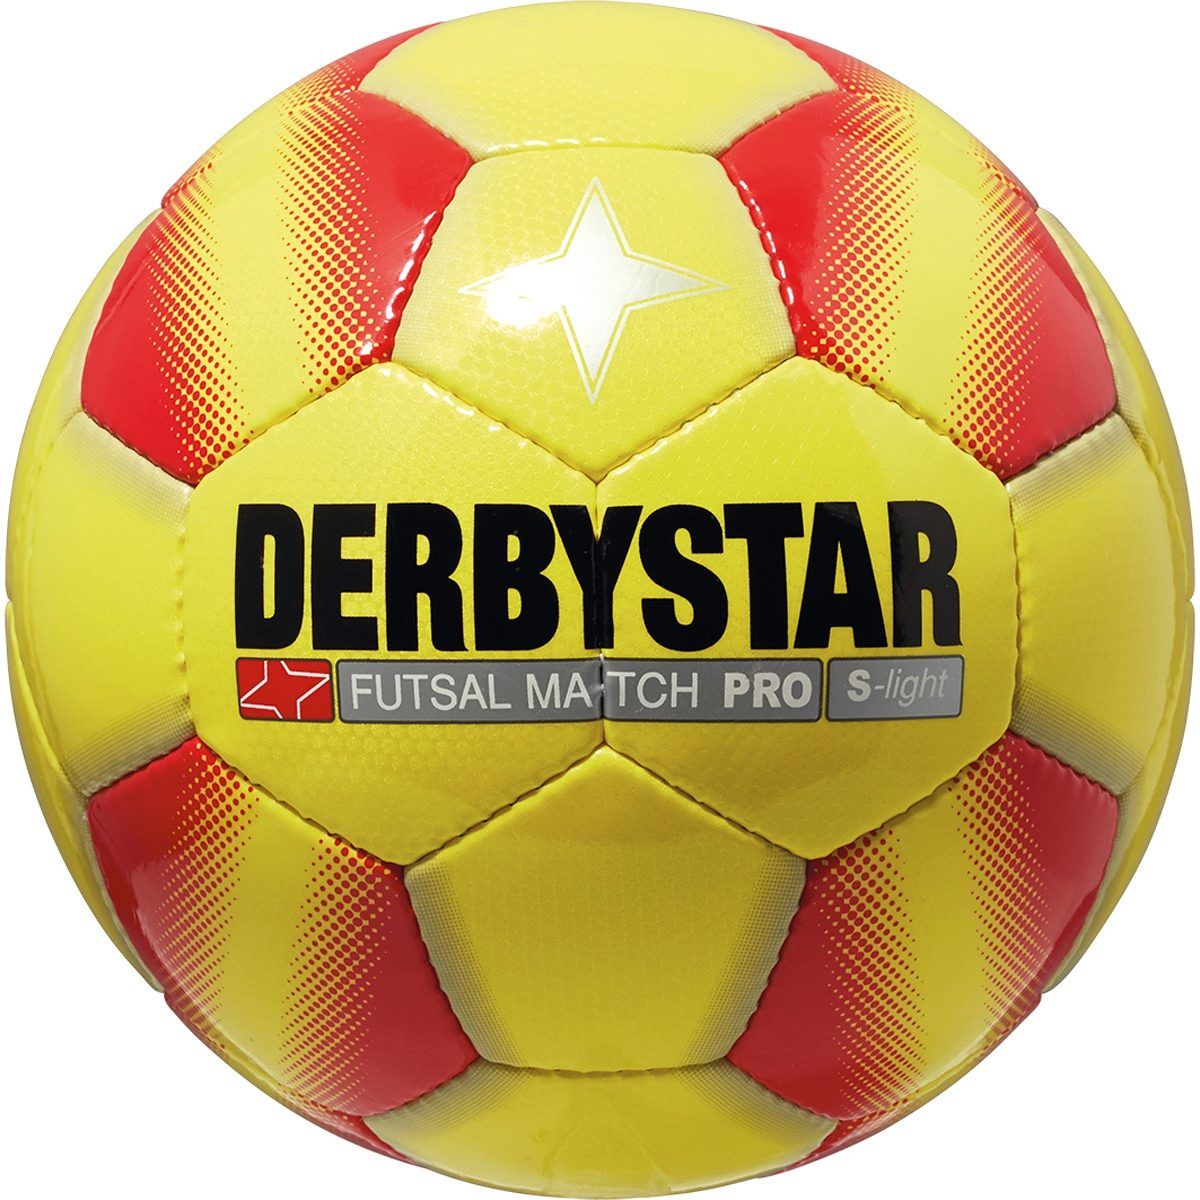 DERBYSTAR Futsal Match Pro S-Light Fußball